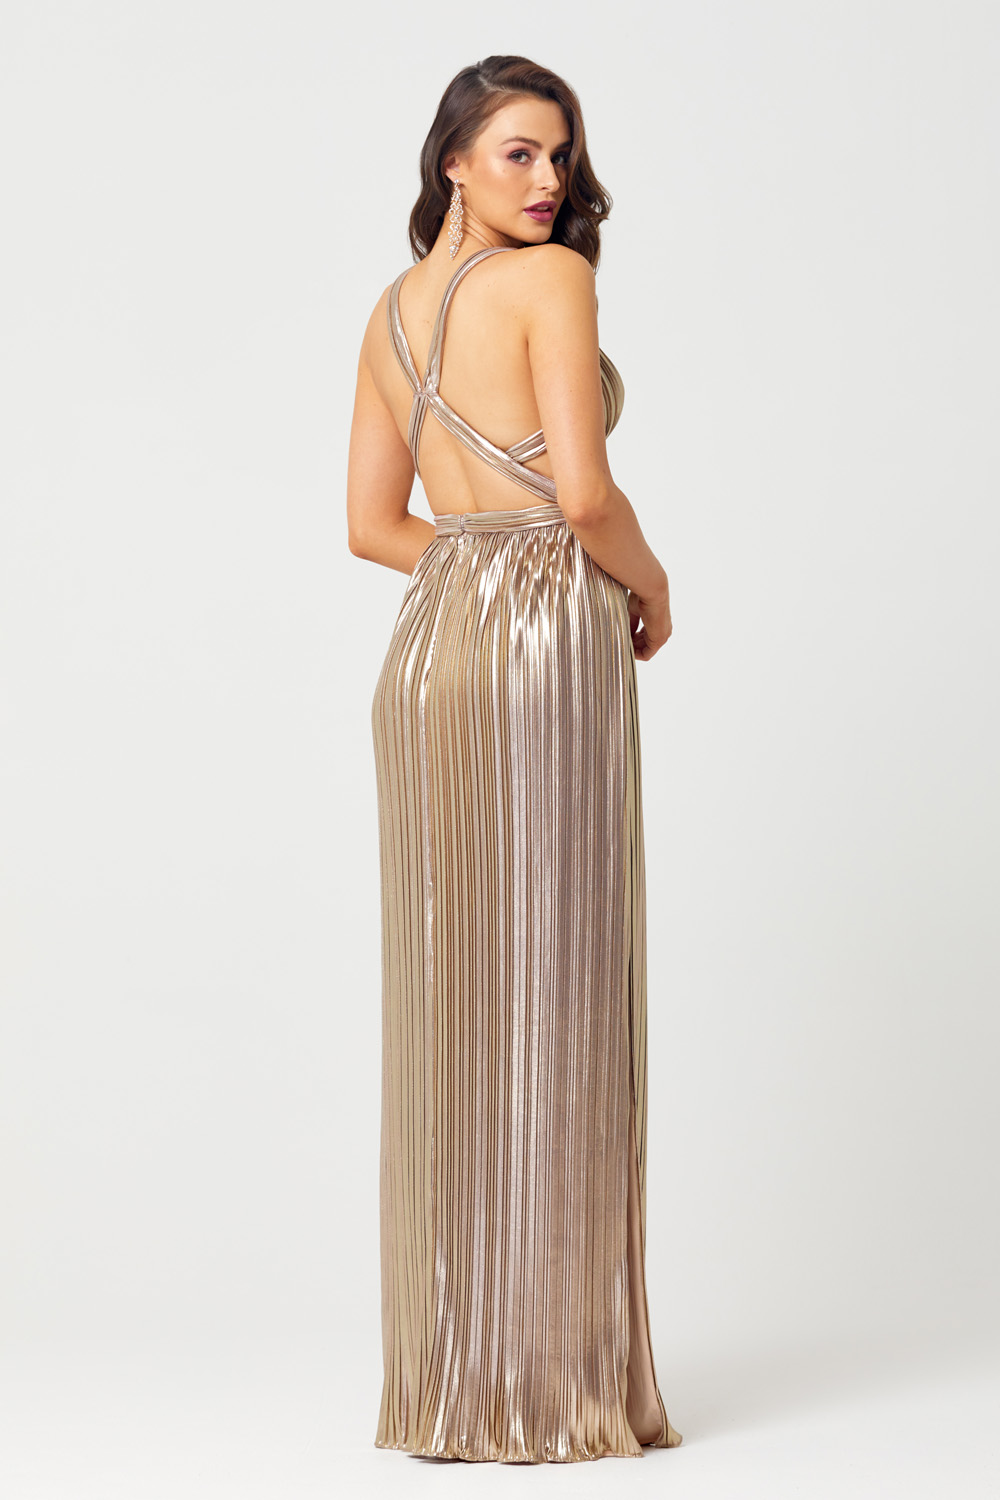 Elena Sunray Pleat Evening Dress - PO838 back